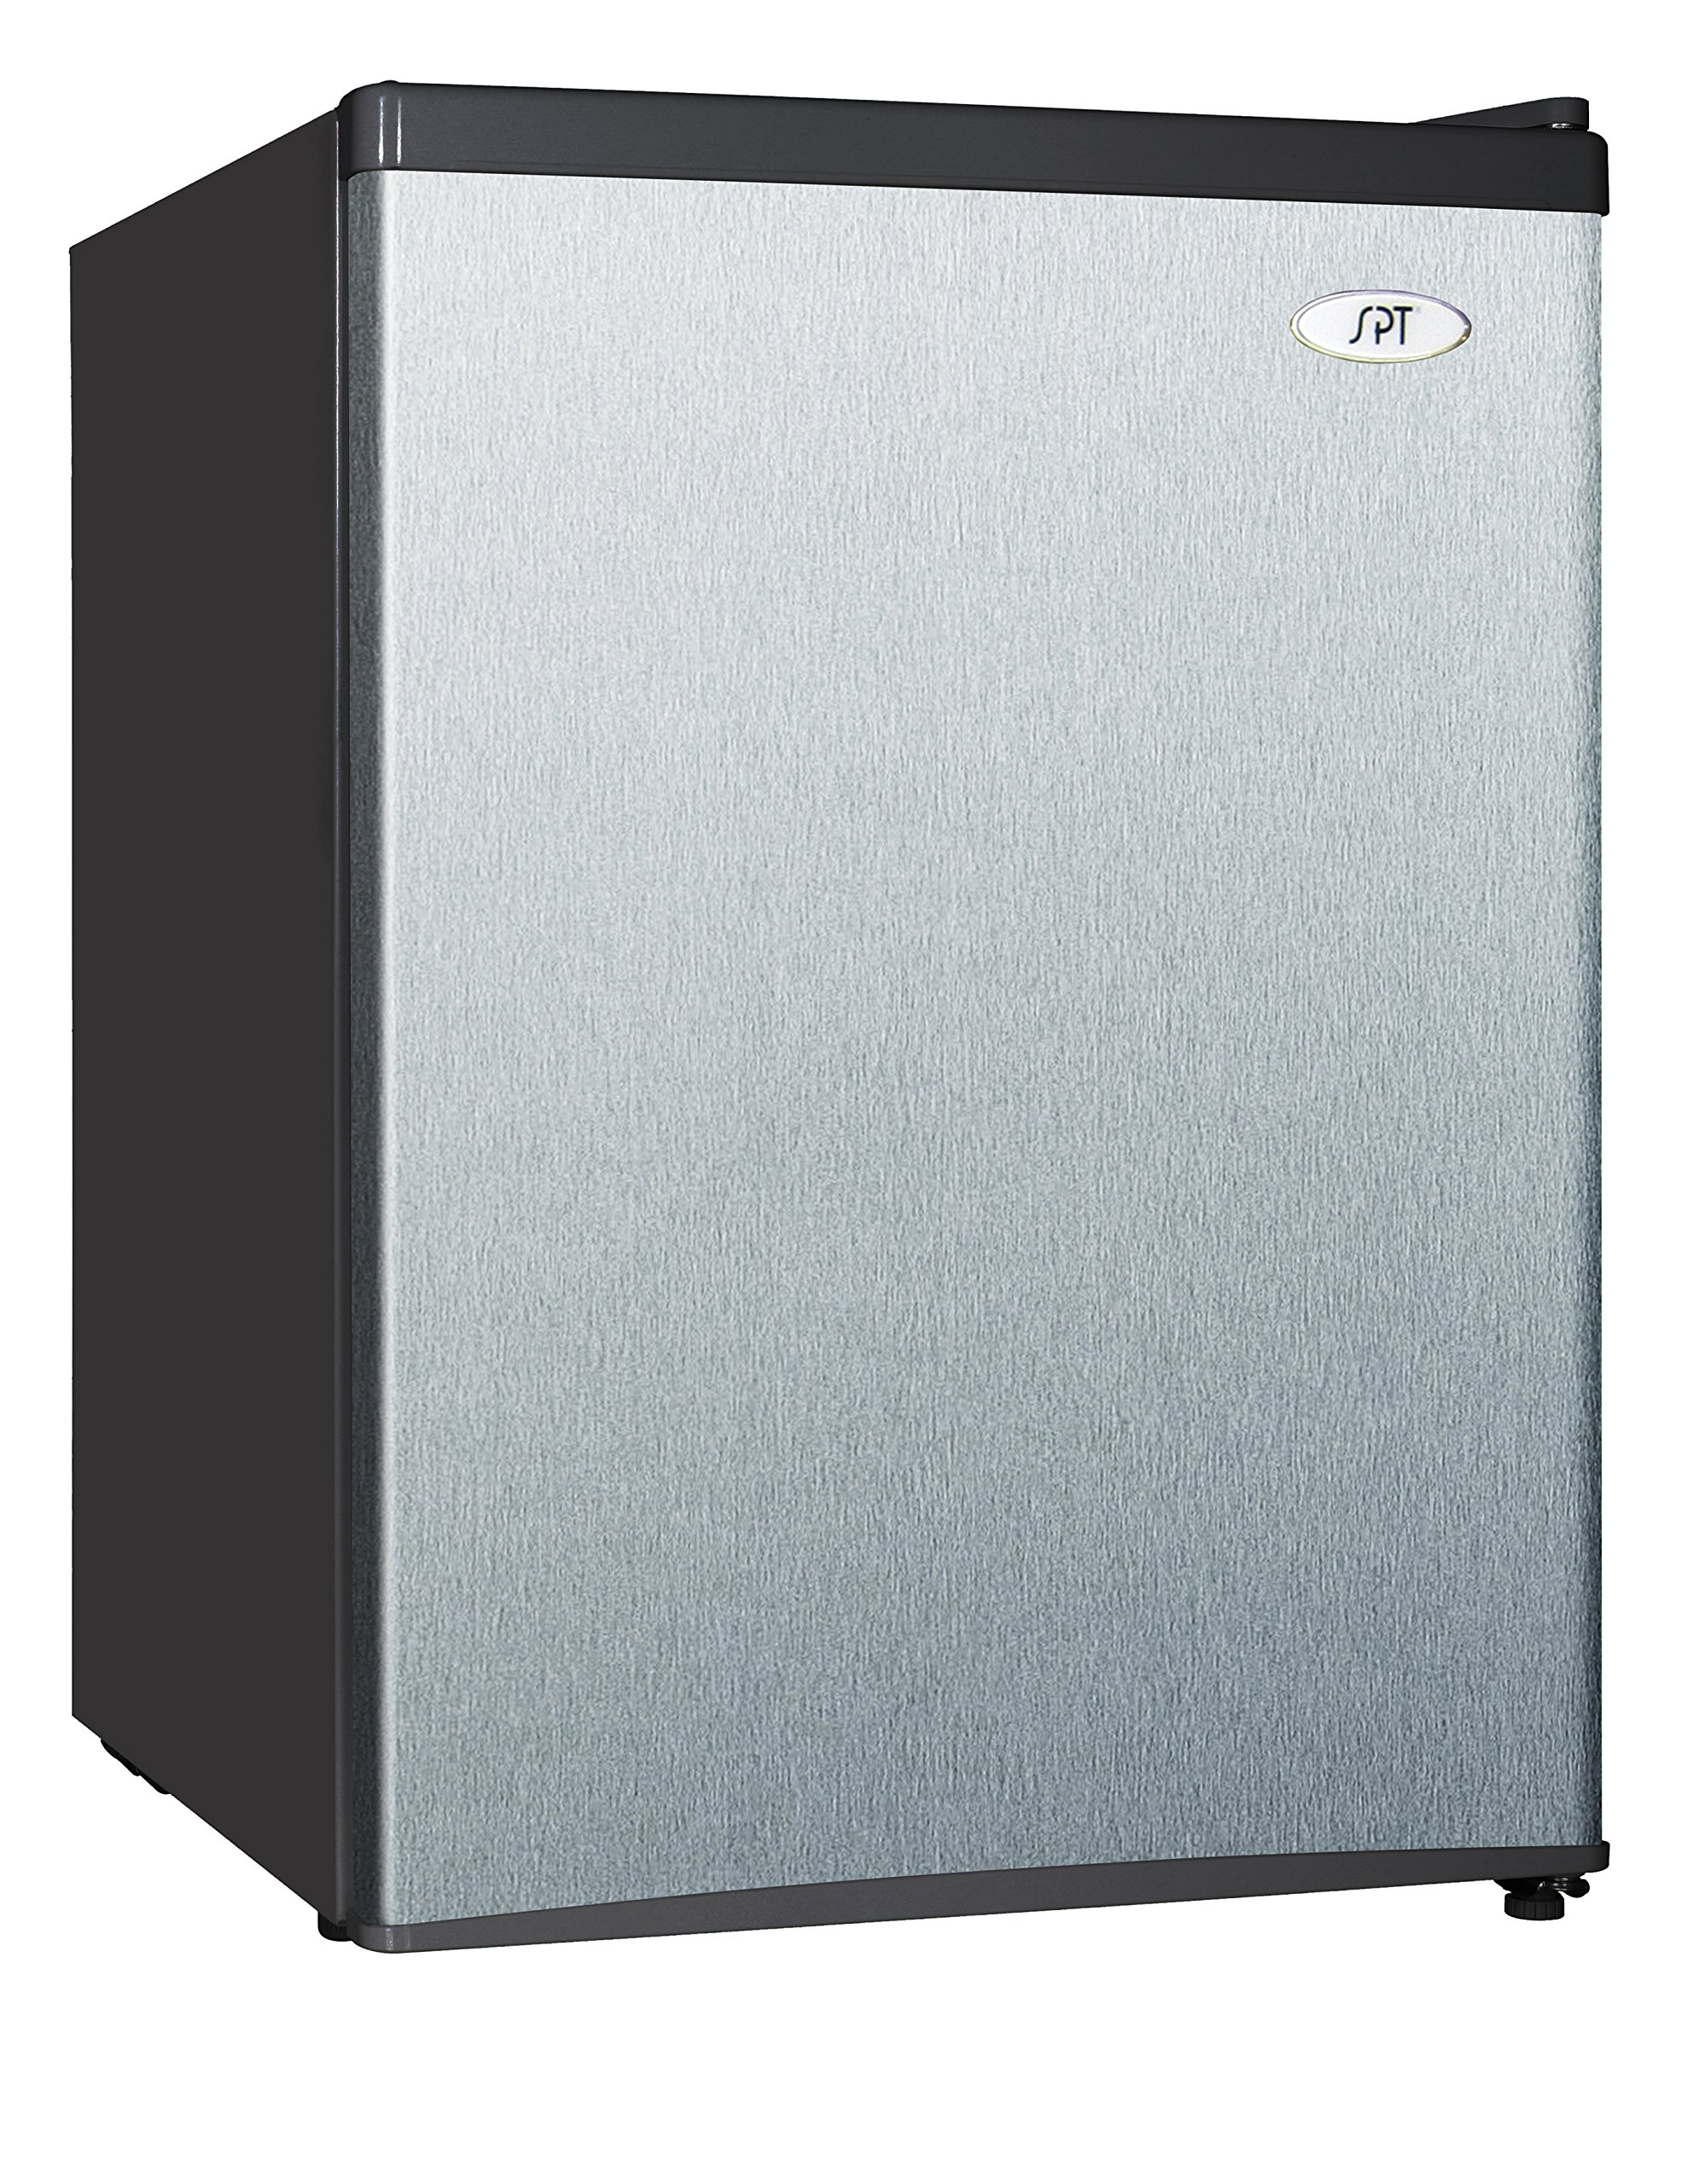 SPT RF-244SS Compact Refrigerator, Stainless, 2.4 Cubic Feet by SPT